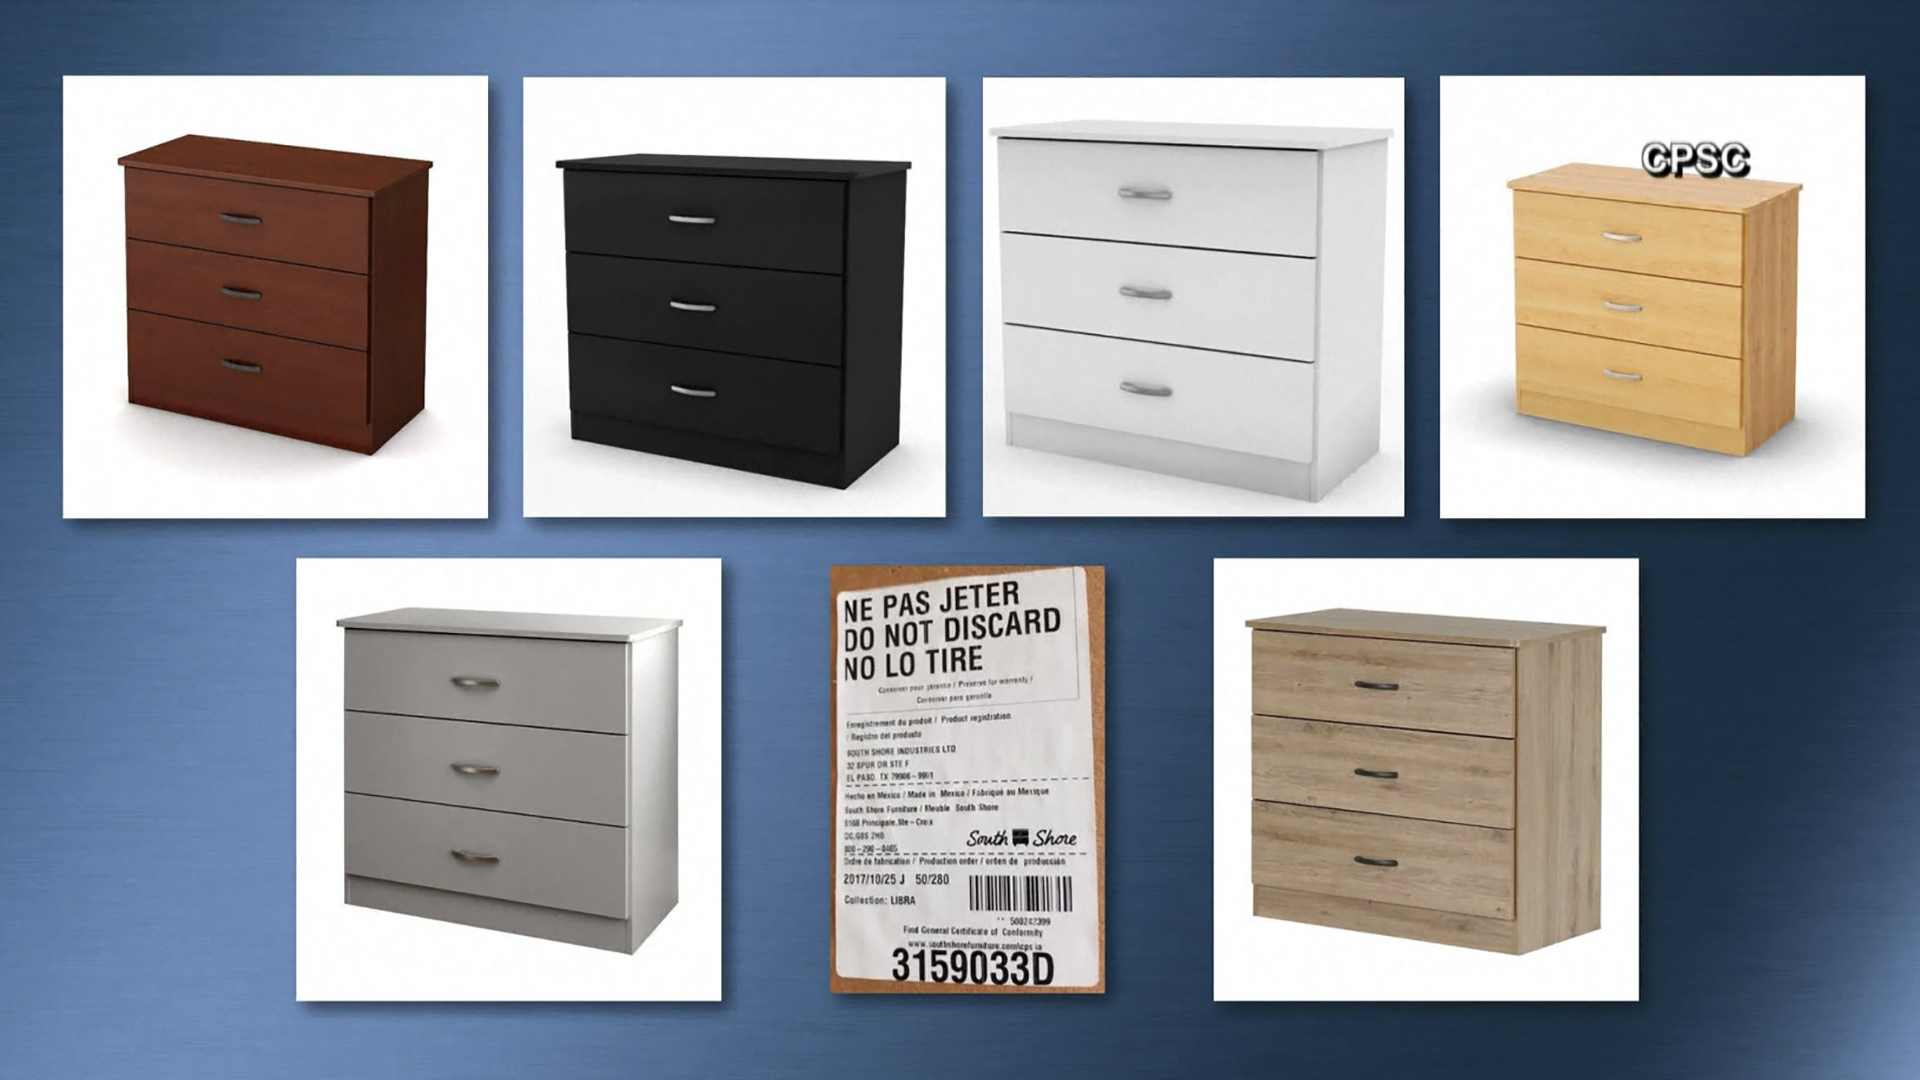 6032997f South Shore Furniture recalling more than 300,000 chests due to ...